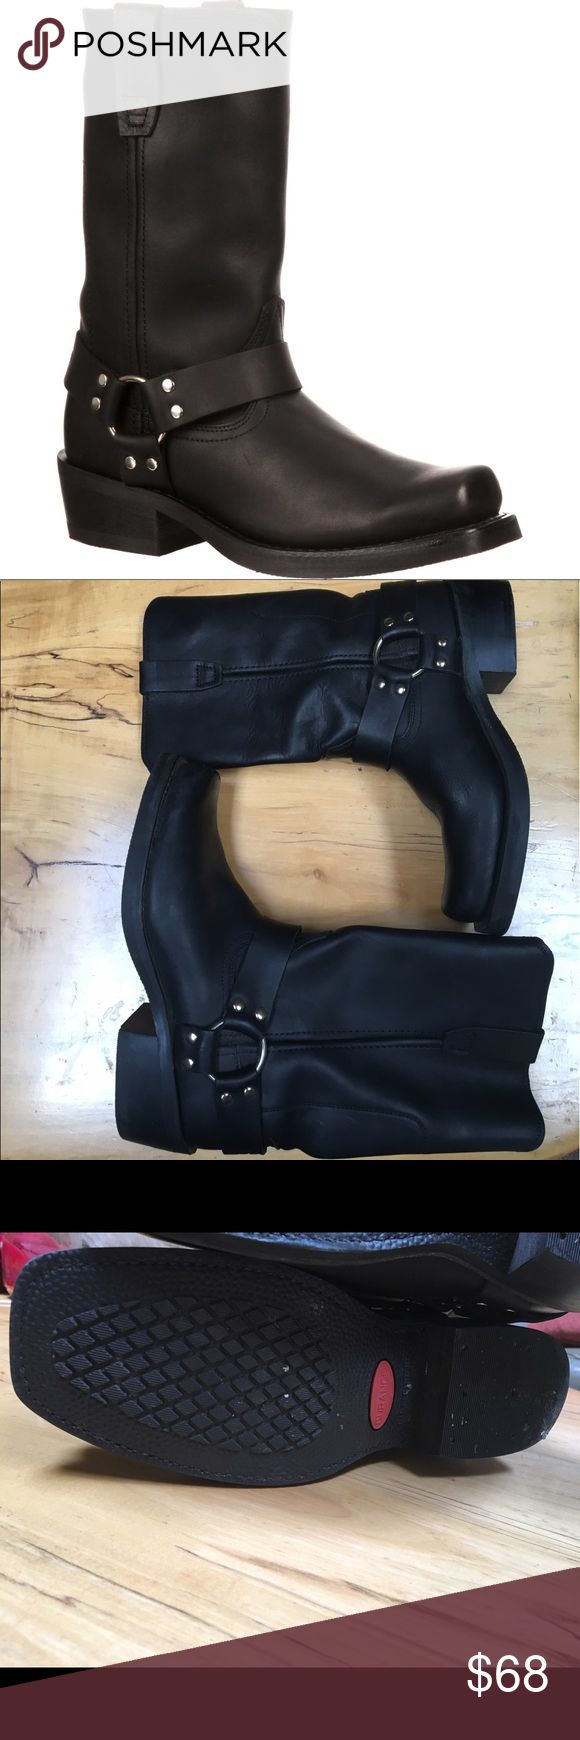 Black leather Durango Motorcycle boots BRAND NEW! Black leather moto boots, brand is Durango. Originally $160. Only worn once. They say men's 8.5 but we're worn as a woman's shoe size 10.5. Can go either way! Durango Shoes Combat & Moto Boots